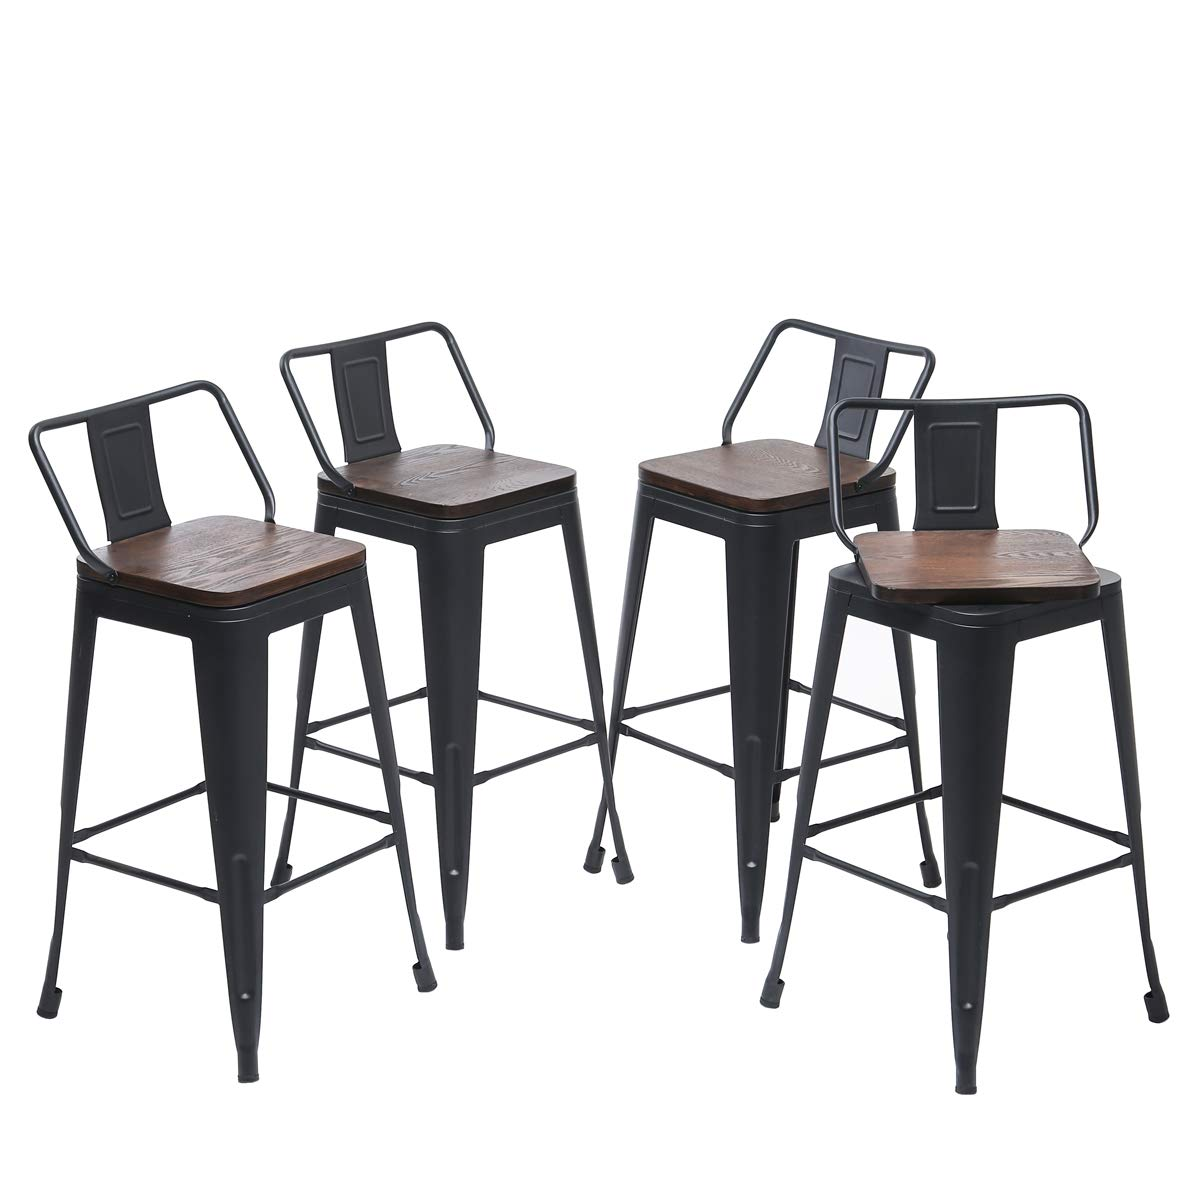 Yongqiang Set of 4 Swivel Metal Bar stools 30 inch Kitchen Counter Stool Industrial Dining Chair Stools with Wooden Seat Matte Black